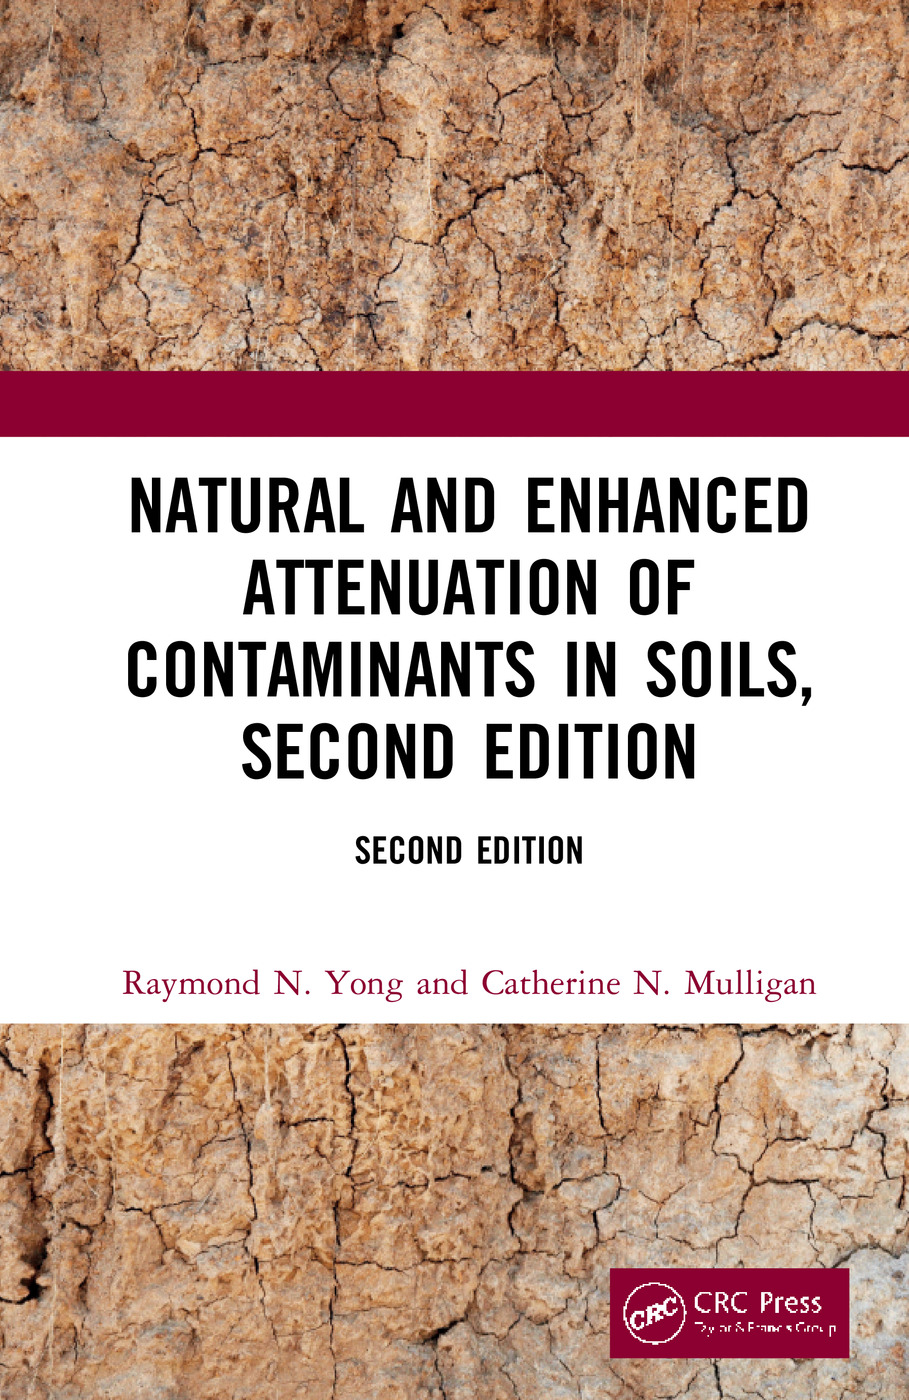 Natural and Enhanced Attenuation of Contaminants in Soils, Second Edition: 2nd Edition (Hardback) book cover